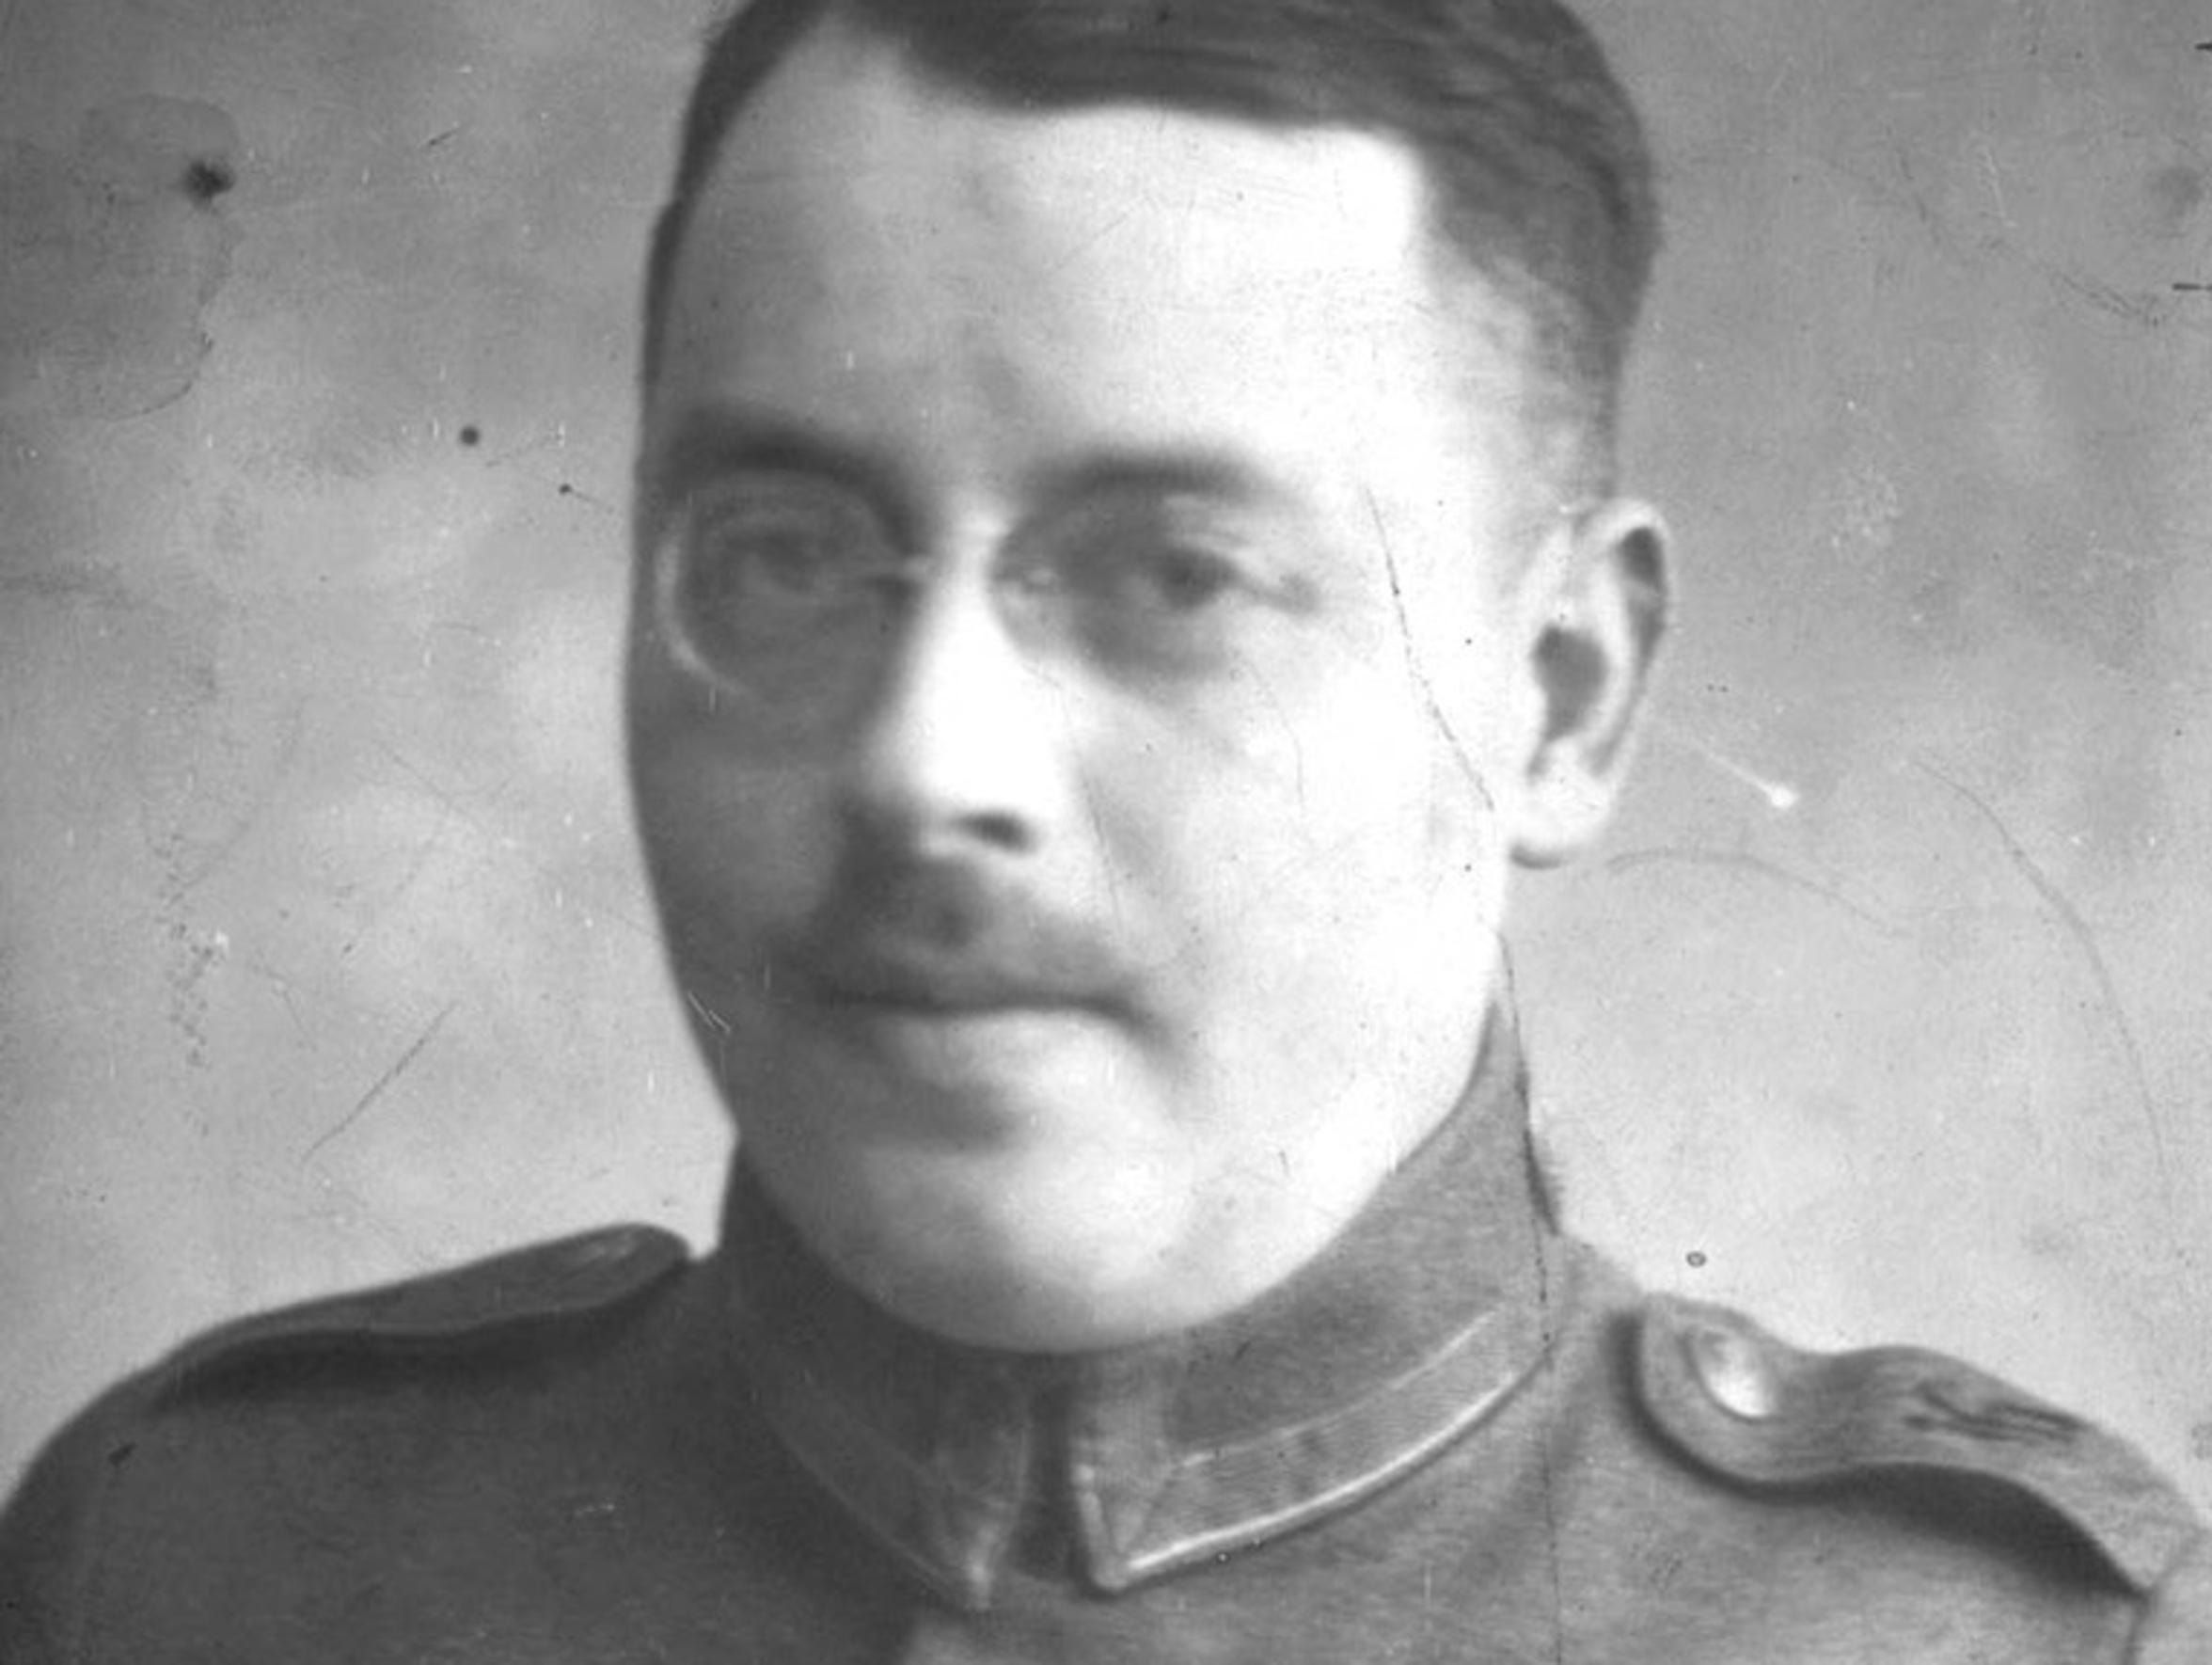 Fritz Grunewald served in the German army during World